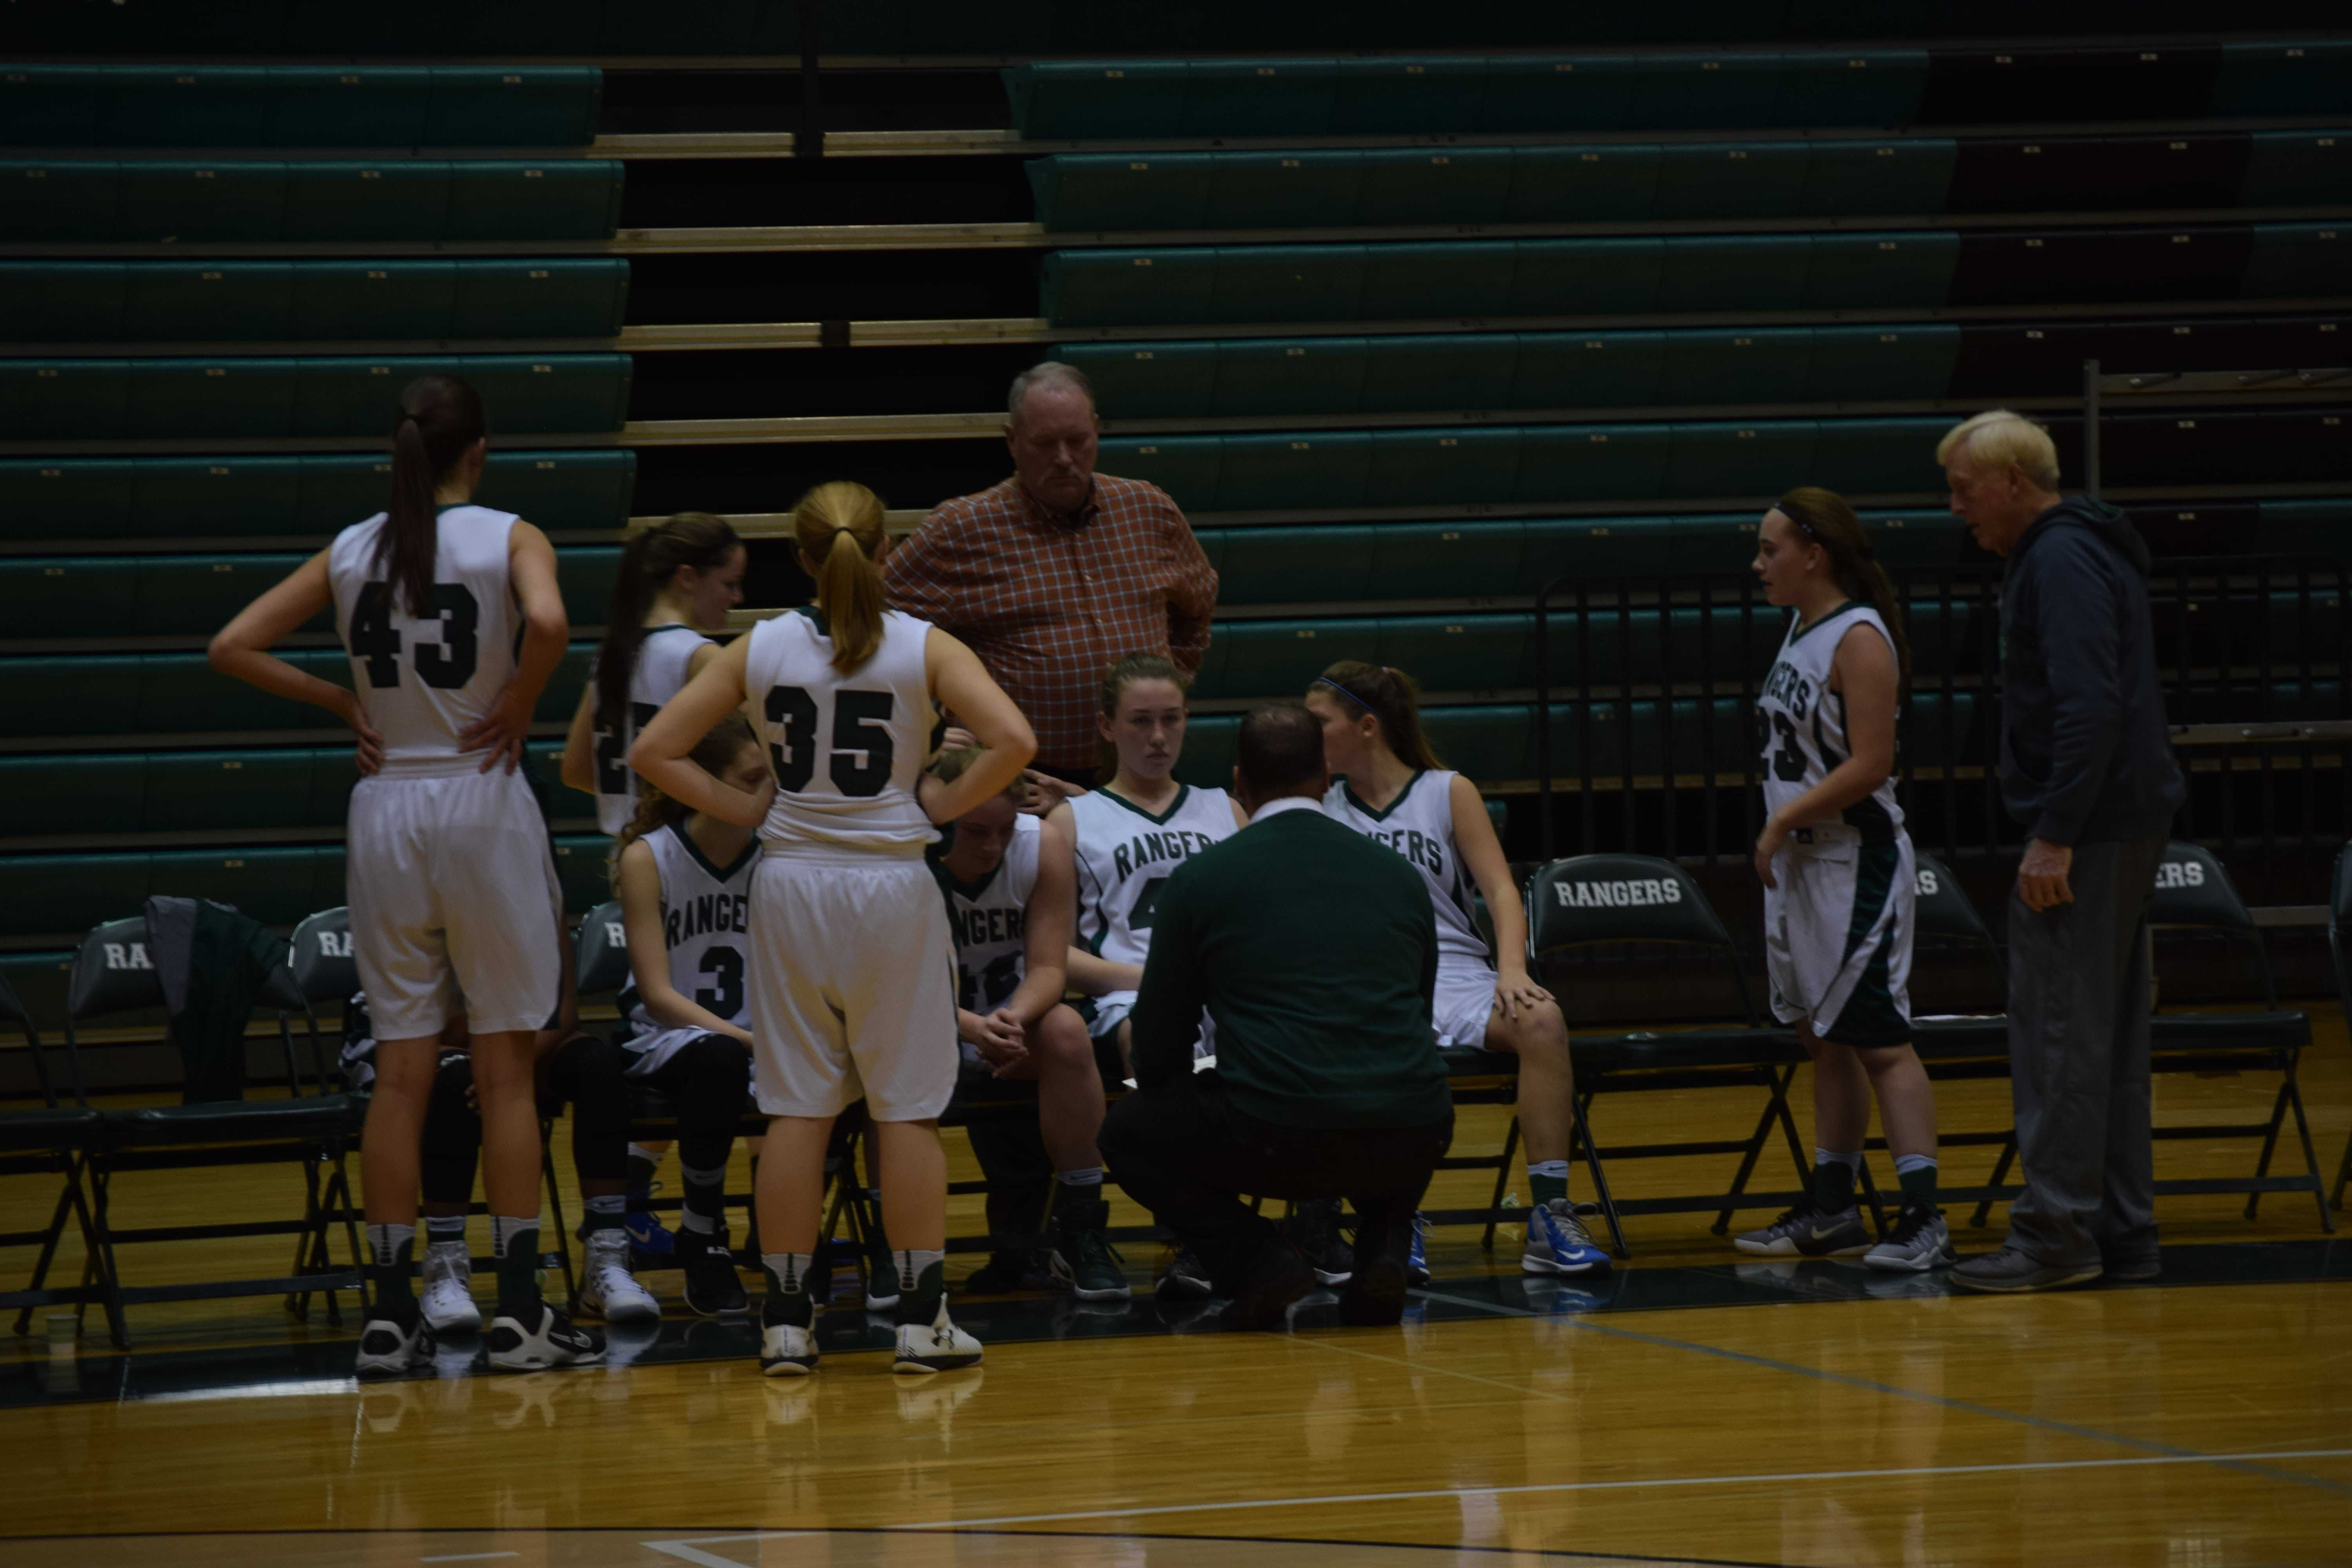 FHC JV Girls Basketball vs. FHN: January 5th 2017